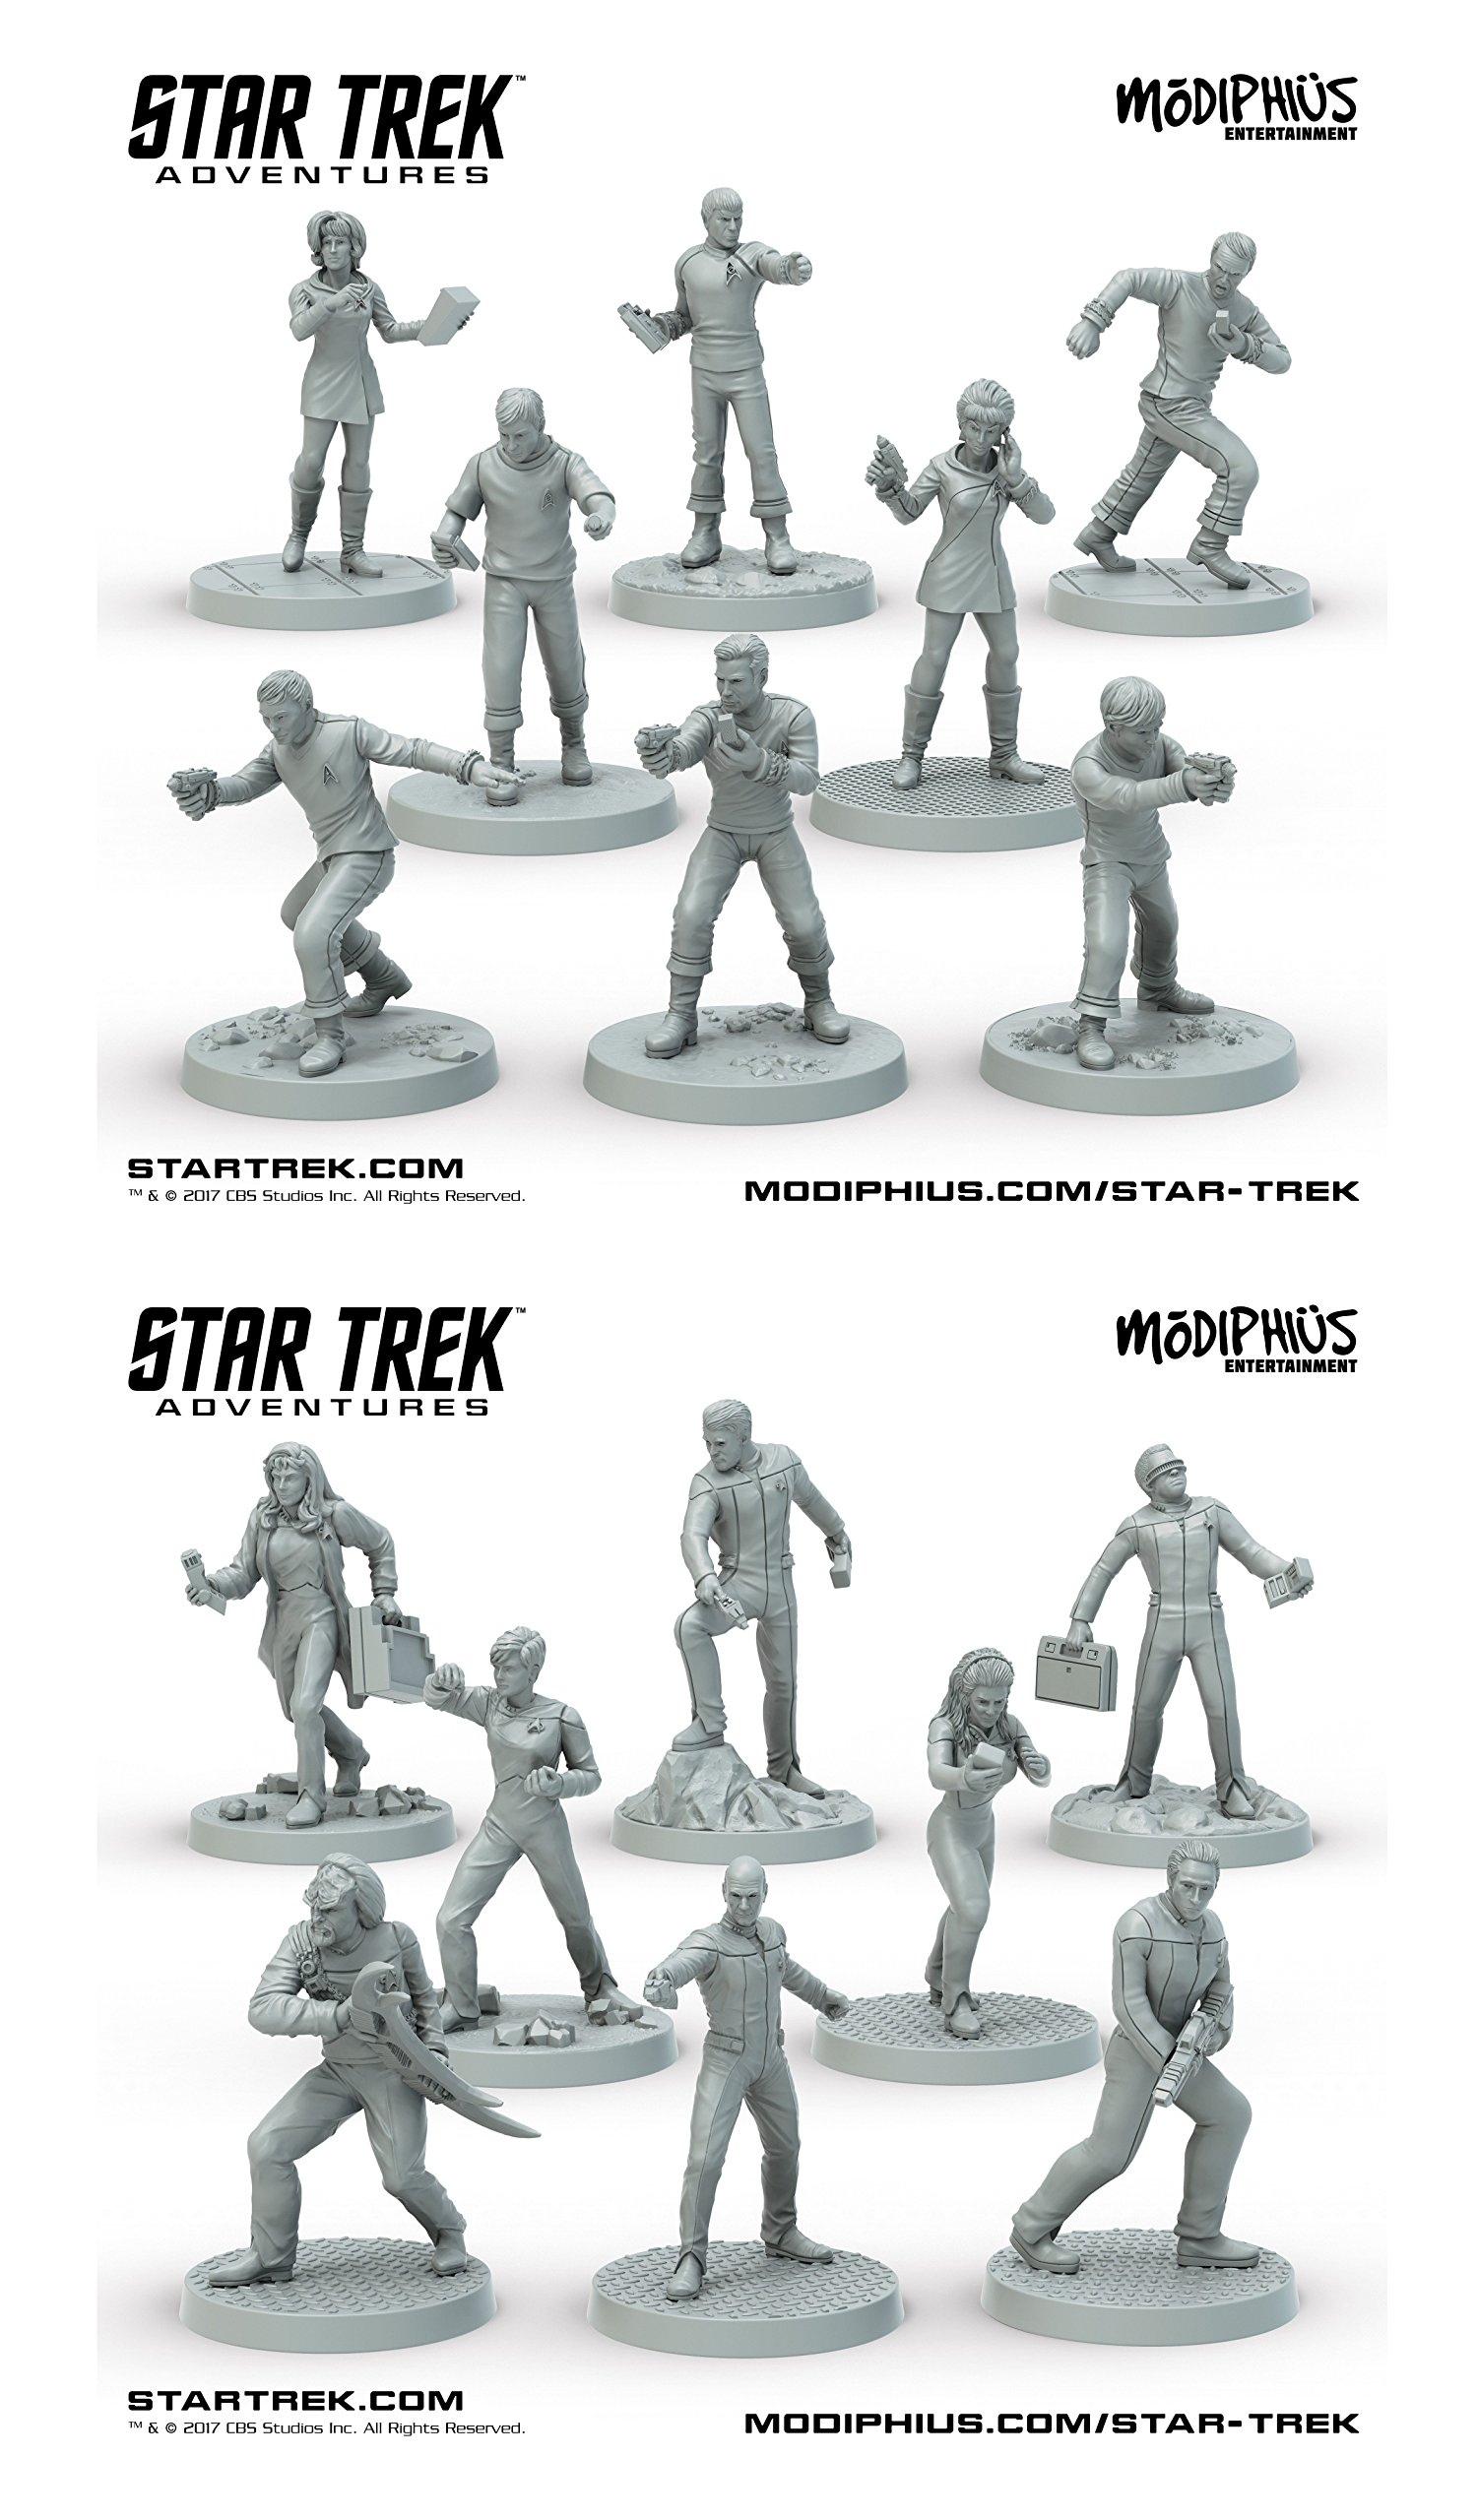 Star Trek Adventures 32mm Miniatures Bundle – The Original Series Bridge Crew & The Next Generation Bridge Crew